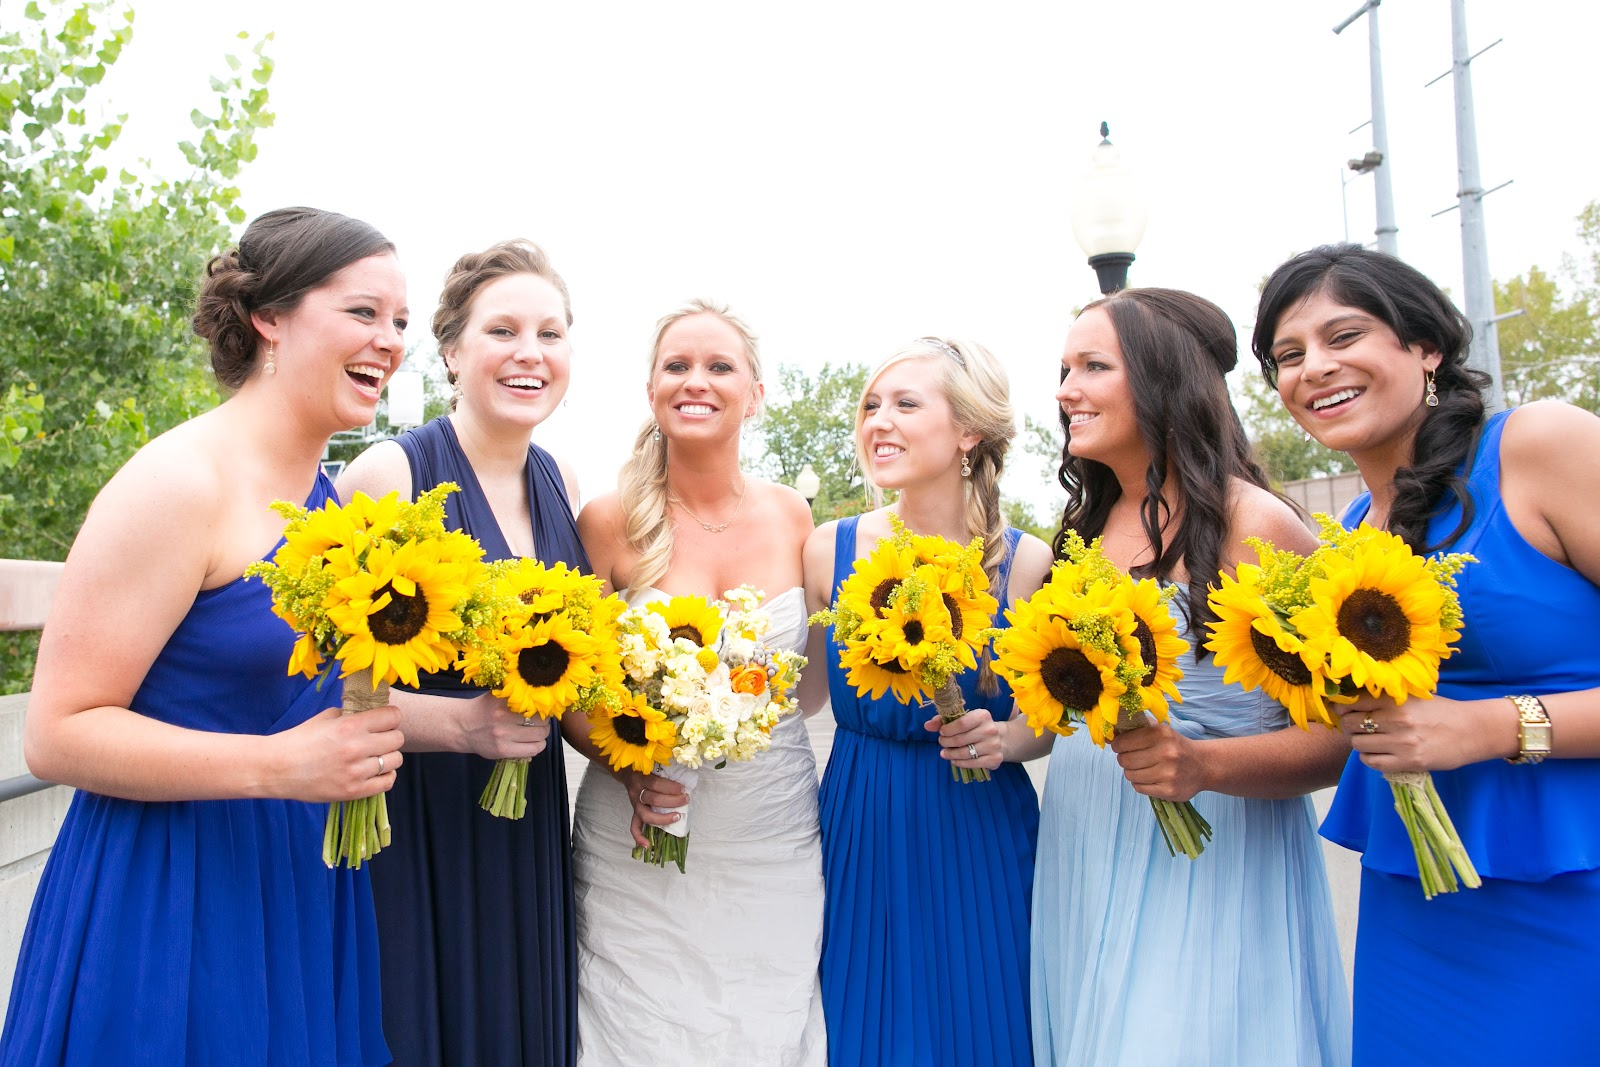 Bridesmaid dresses with sunflowers choice image braidsmaid dress good earth floral design studio blair jarrod pond photography kansas city wedding flowers florist overland park ombrellifo Gallery